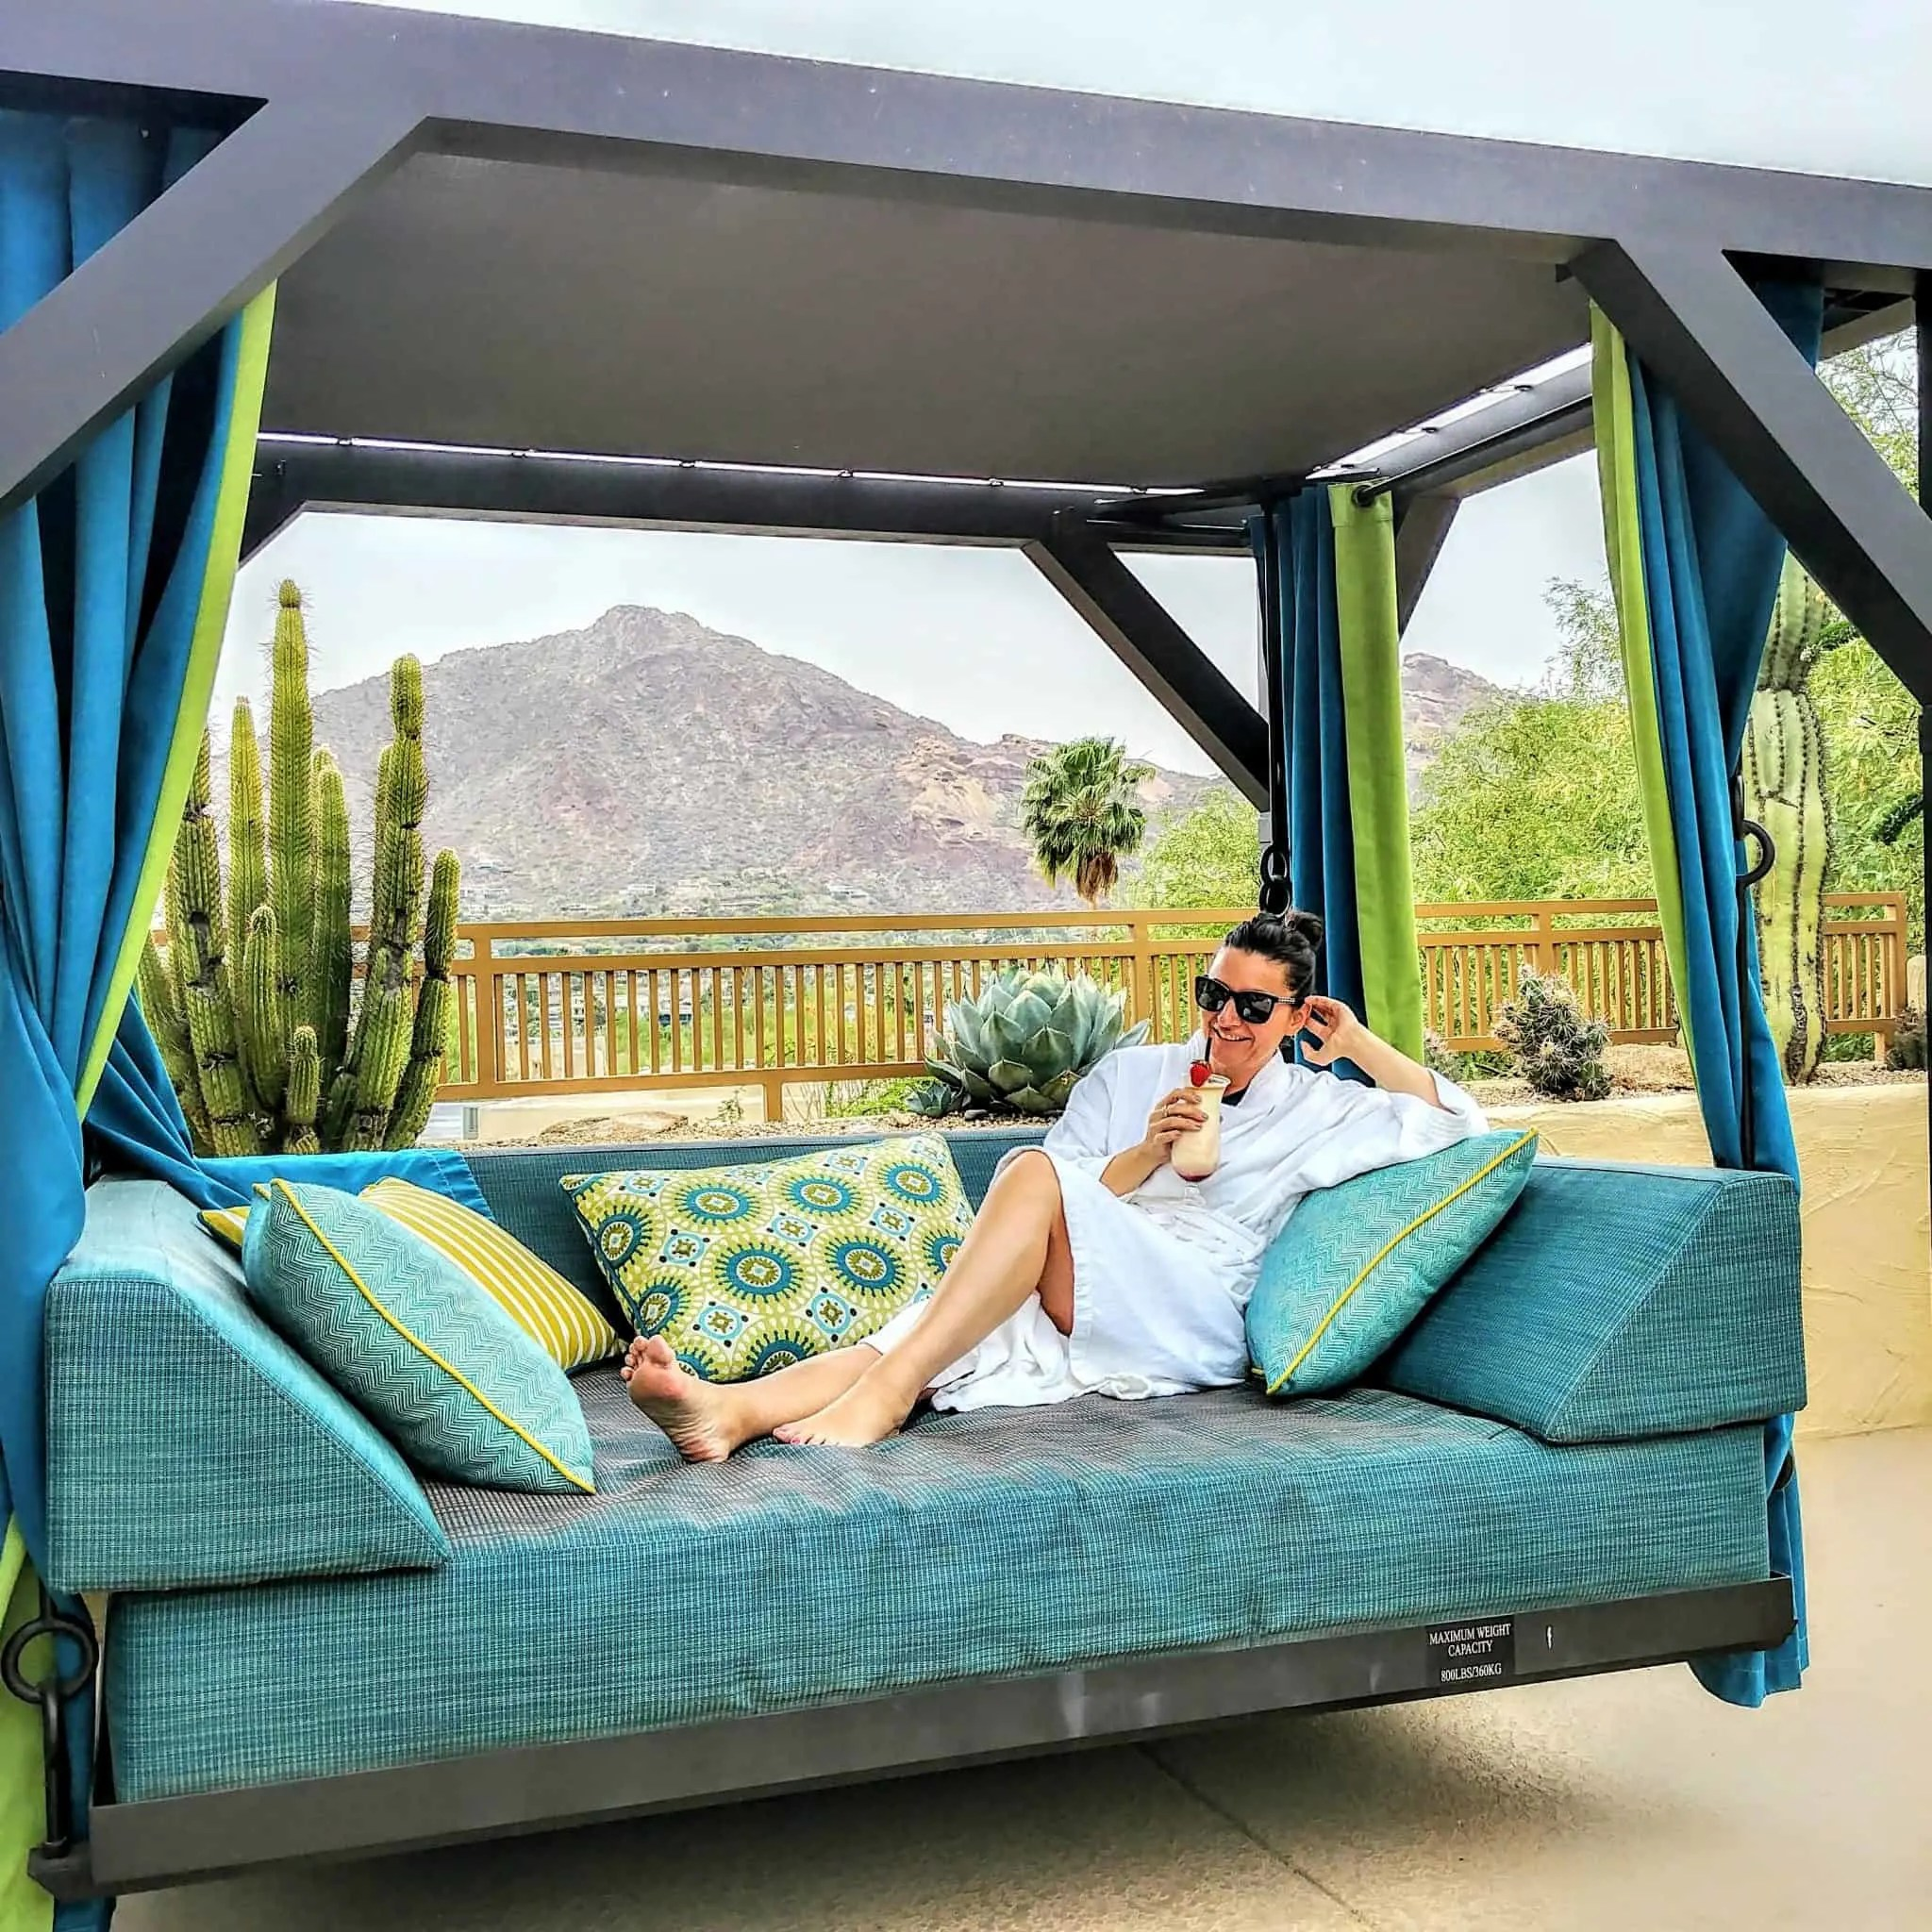 Marriott Cambelback Inn Scottsdale Arizona Spa lounge lounging on blue swing lounger with pina colada drink and mountain views in robe